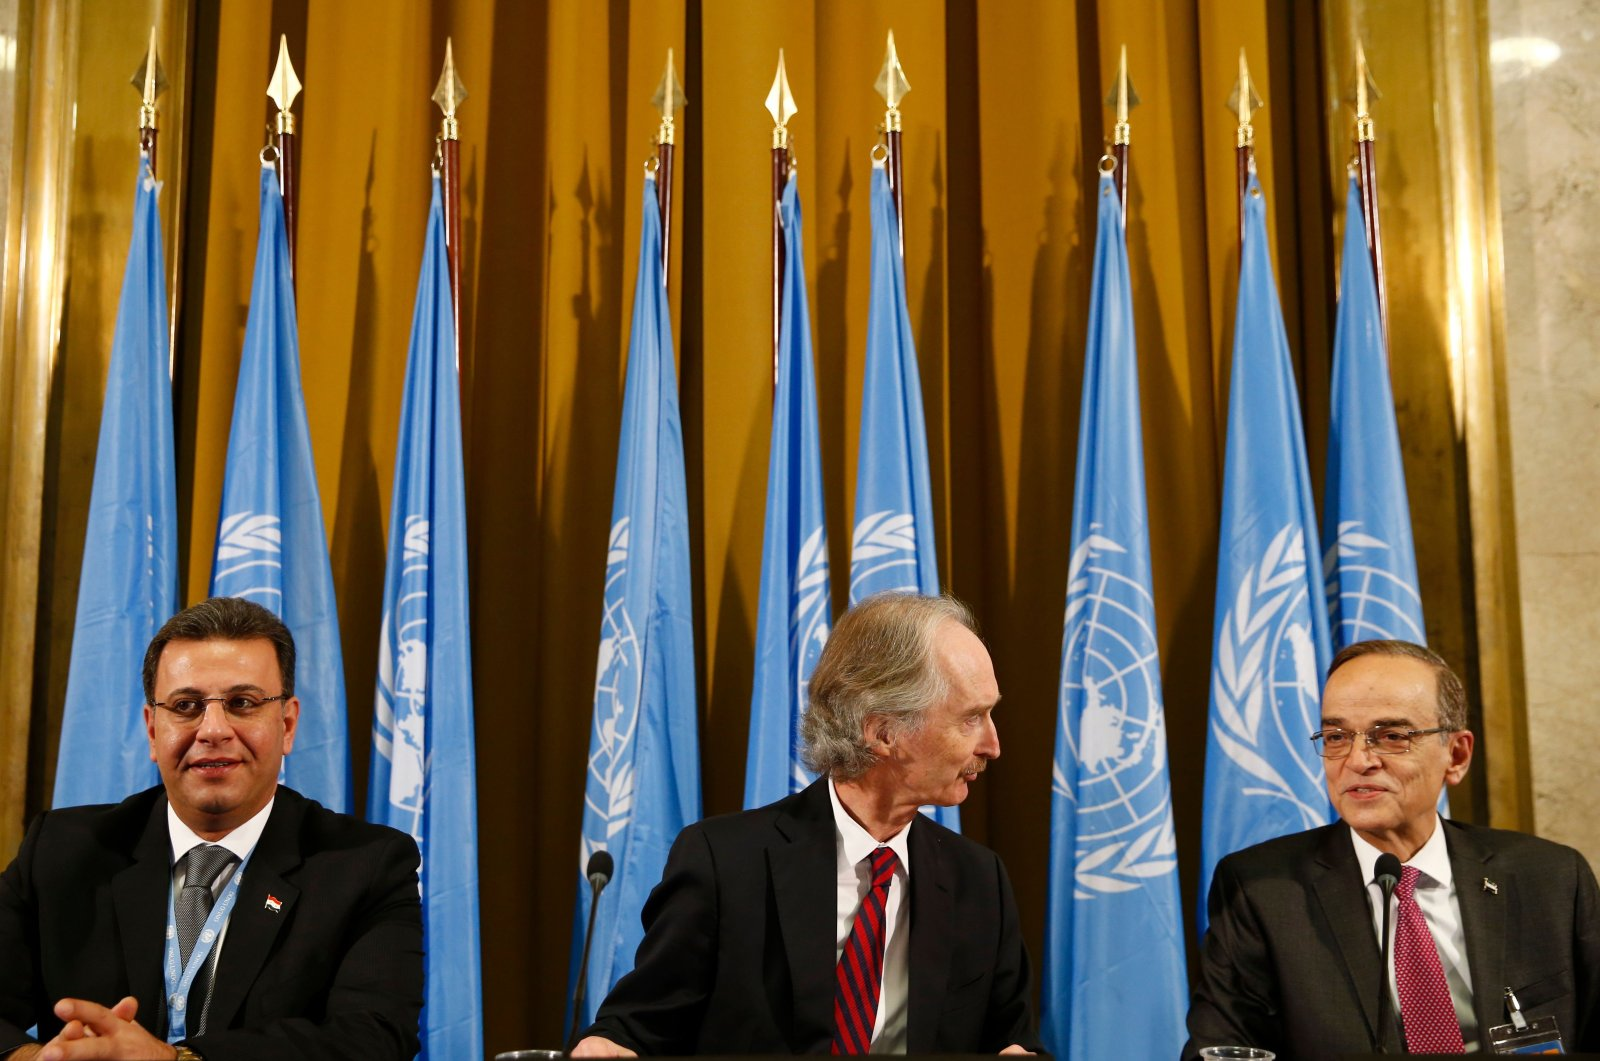 U.N. Special Envoy to Syria Geir Pedersen (C), co-chair Syrian MP Ahmad al-Kuzbari (L) and co-chair opposition Syrian Negotiations Commission Hadi al-Bahra attend a ceremony to mark the opening of a meeting of the Syria constitution-writing committee at the United Nations Offices in Geneva, Oct. 30, 2019. (AFP Photo)